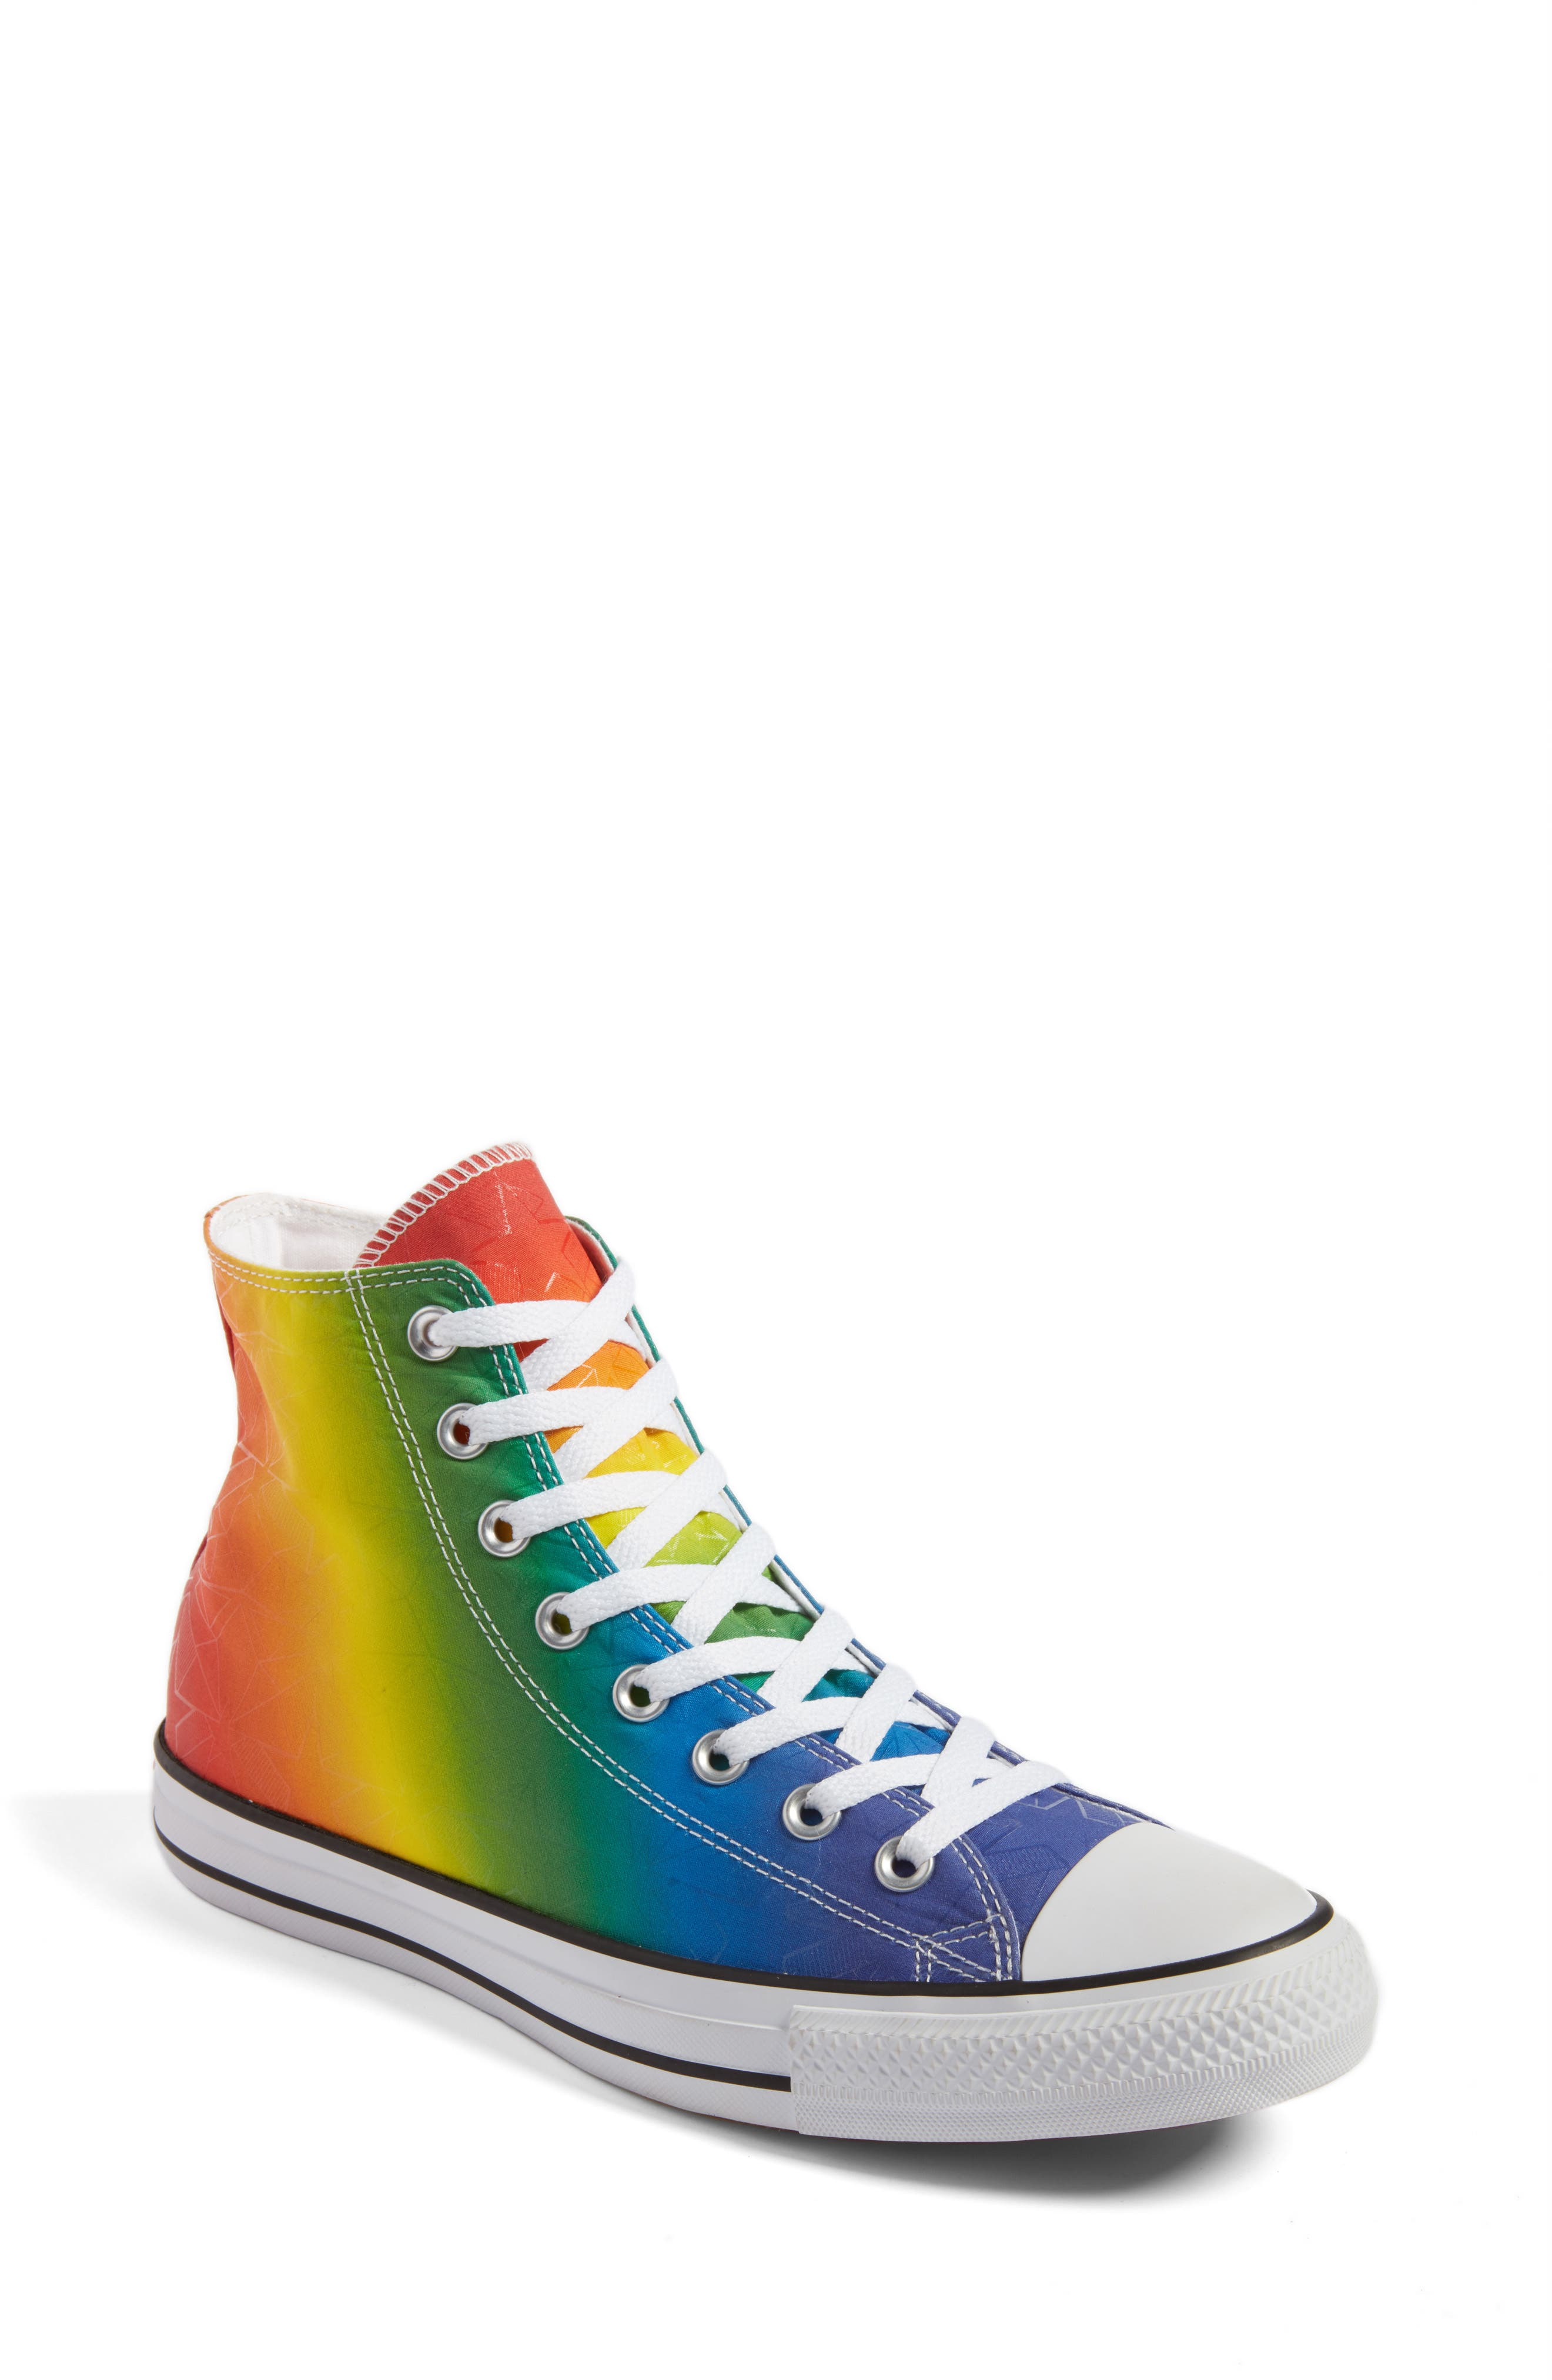 Chuck Taylor<sup>®</sup> All Star<sup>®</sup> Pride High Top Sneaker,                         Main,                         color, 500